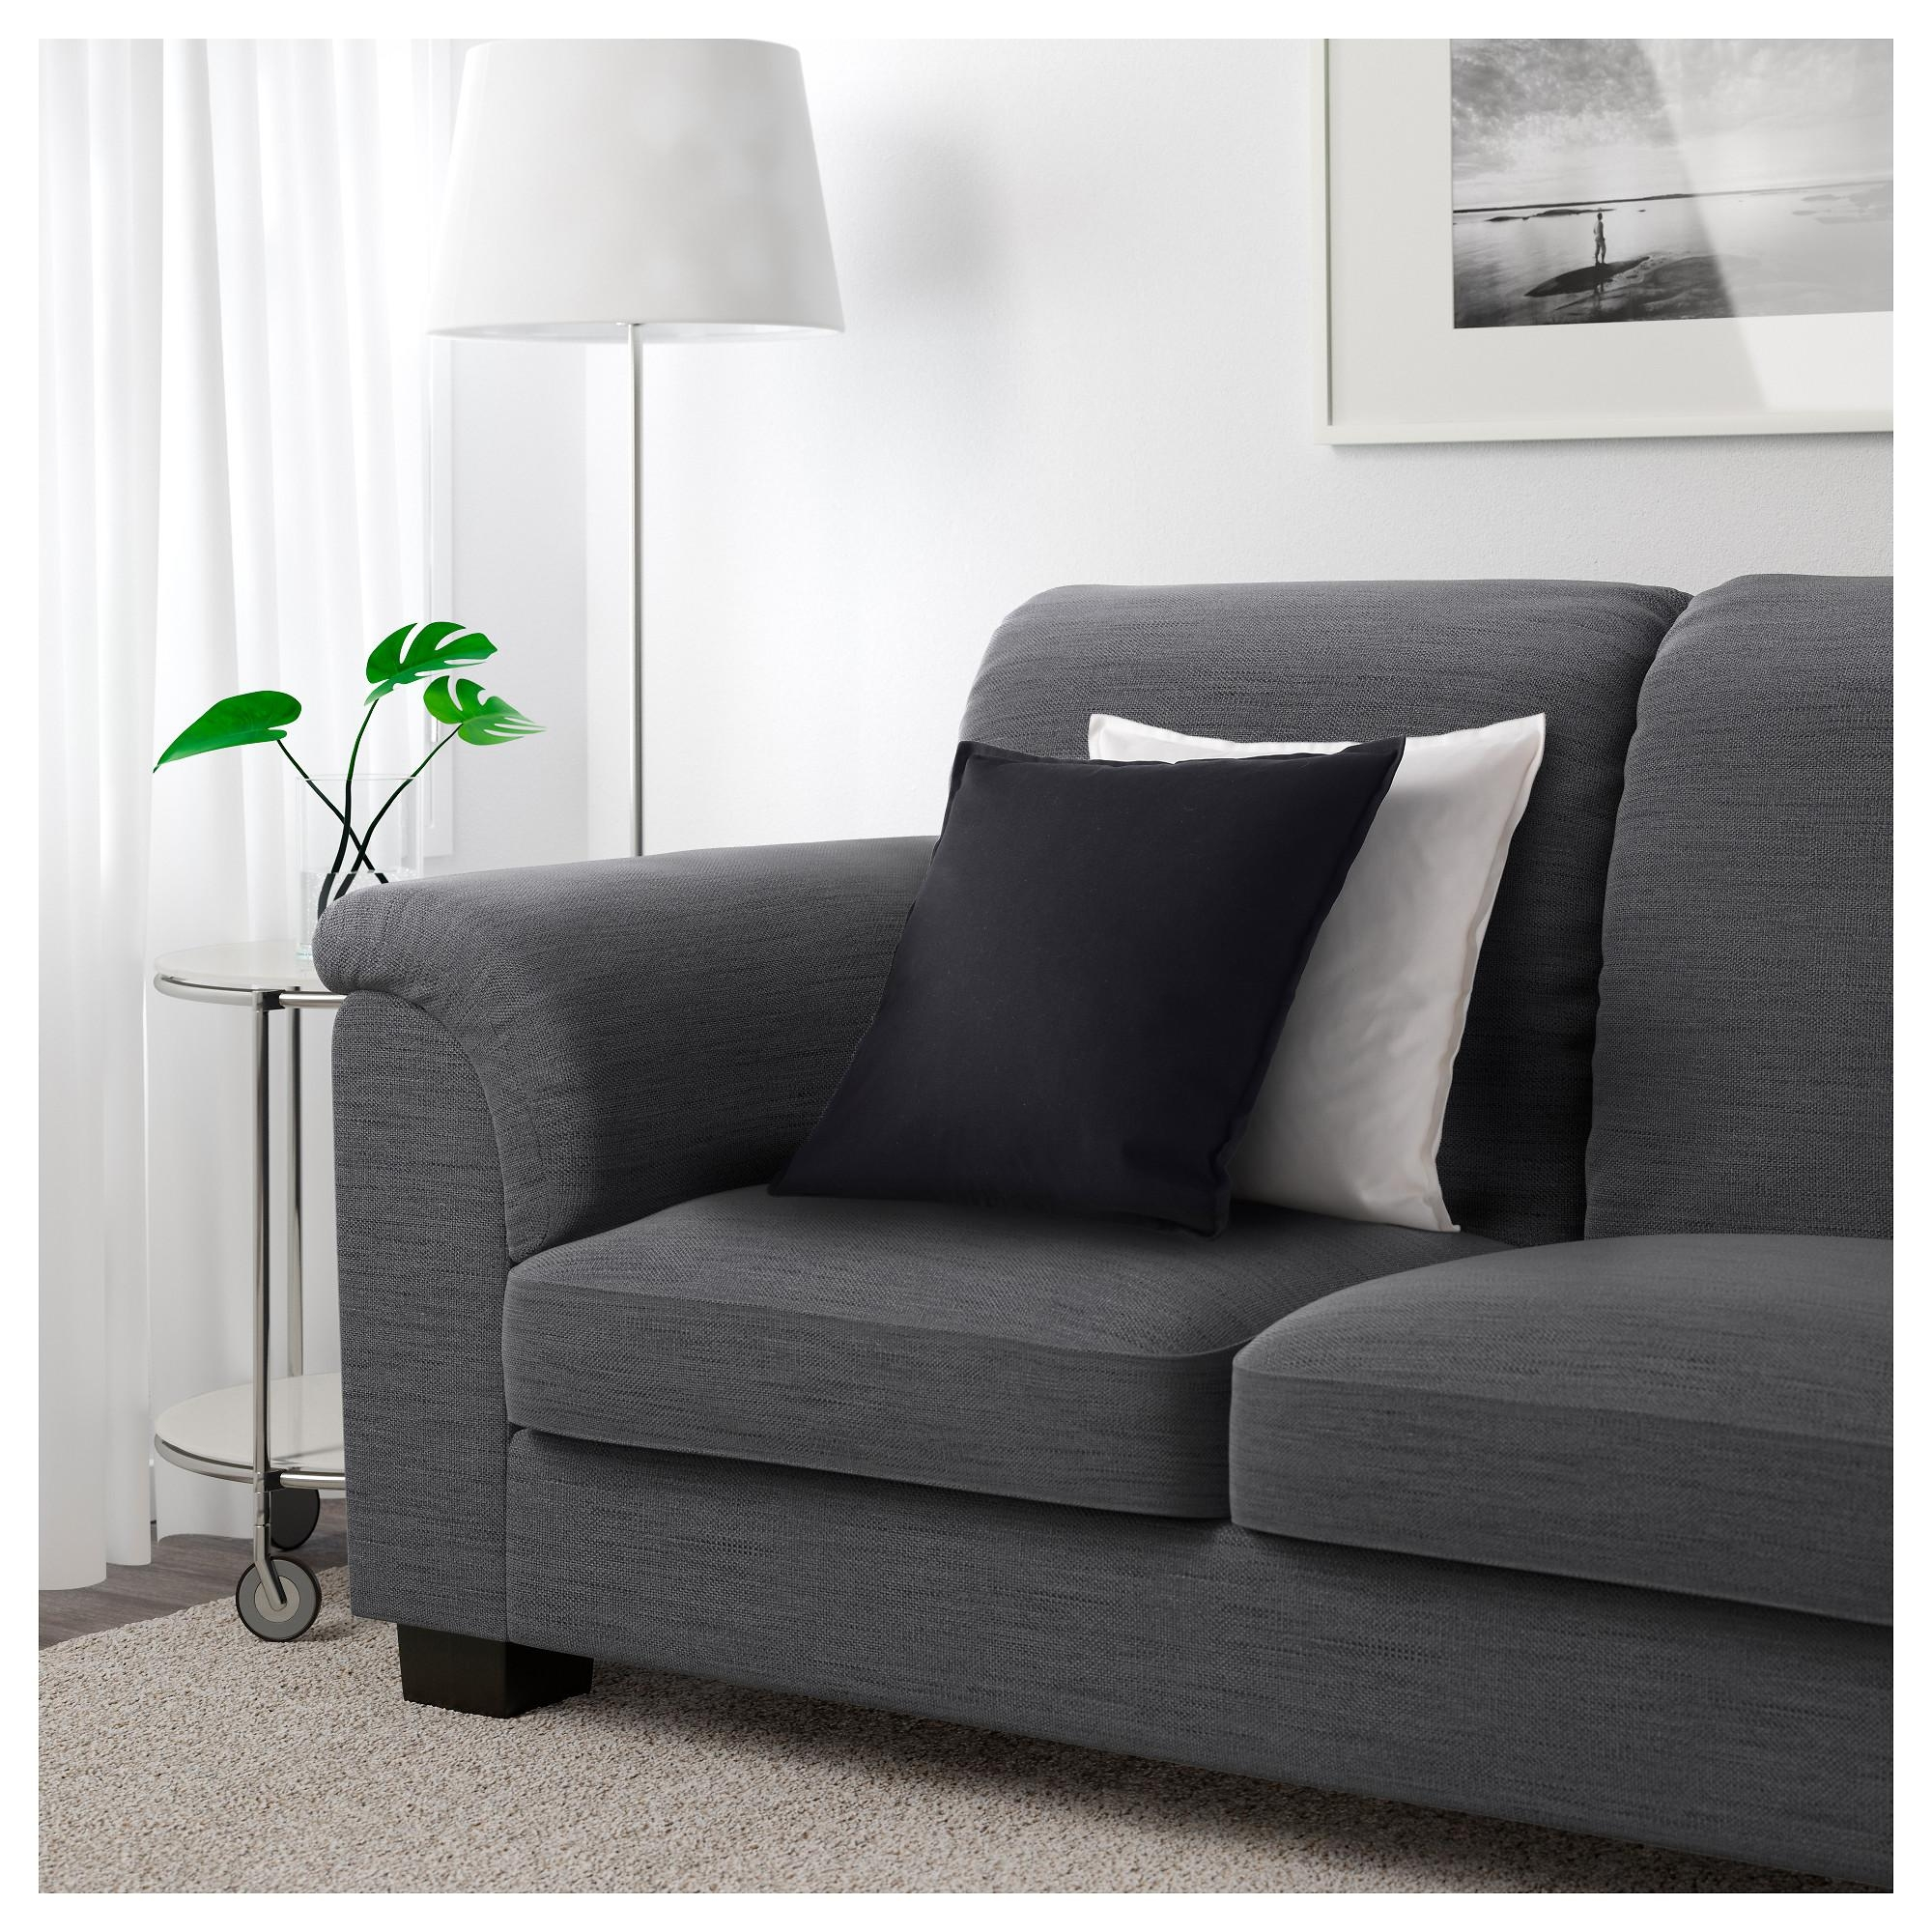 Sofas Center : Vallentuna Seat Corner Sofa Hillared Dark Grey Ikea With Unusual Sofa (Image 13 of 20)